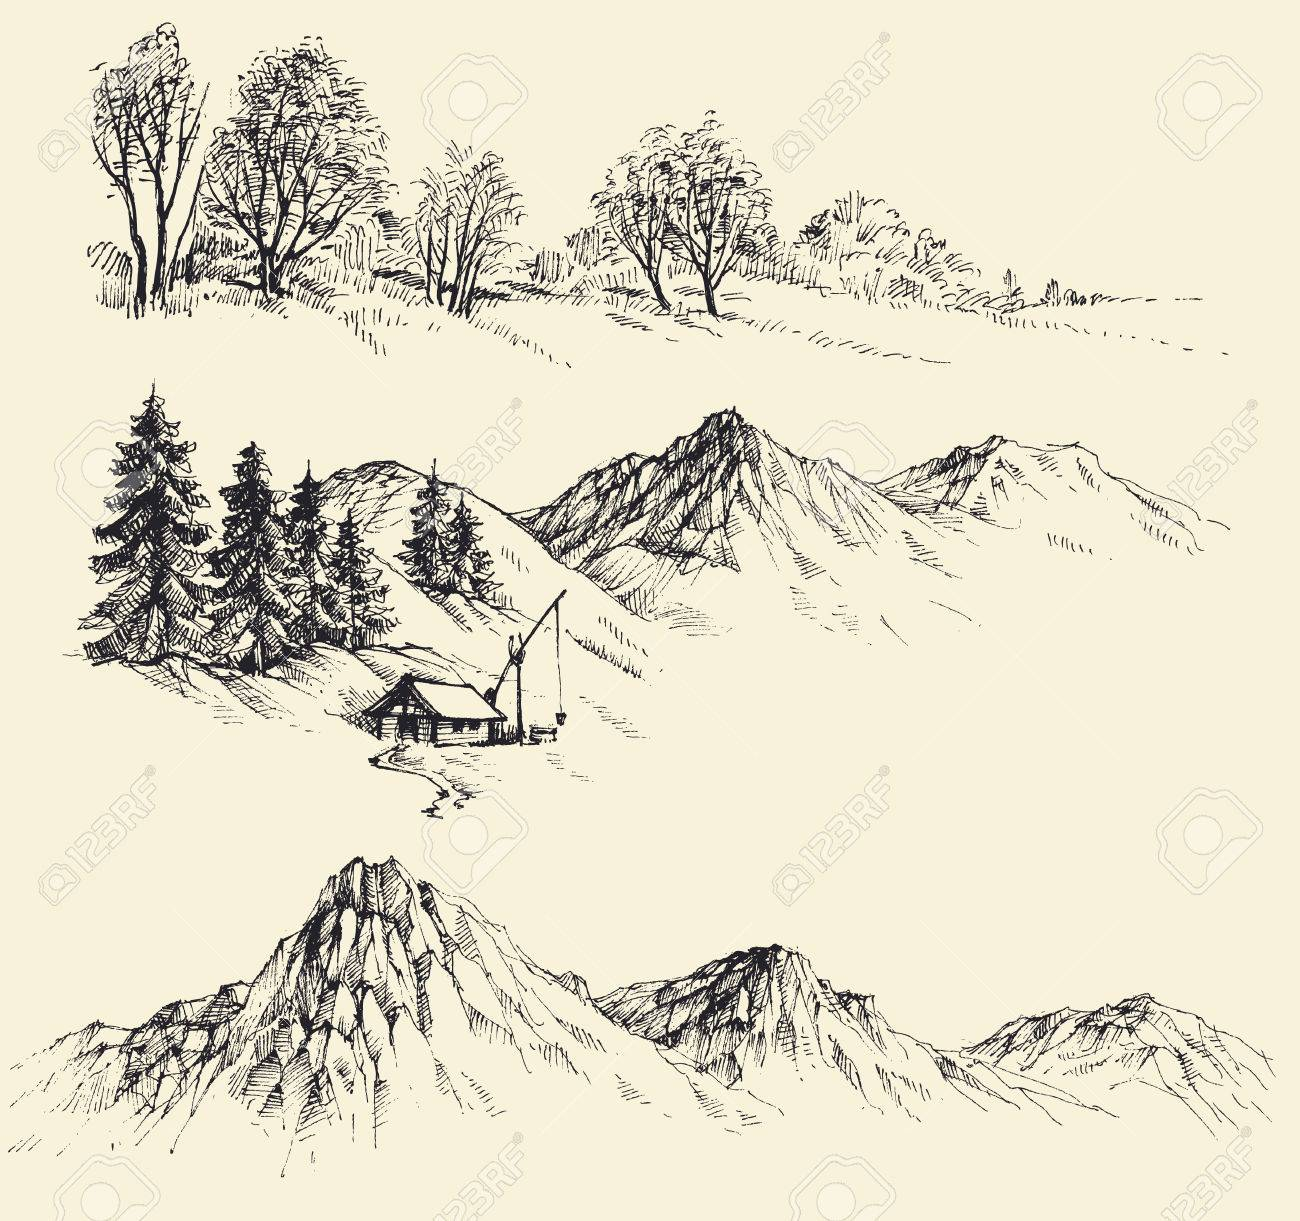 Nature elements set, mountains and forest - 53513235